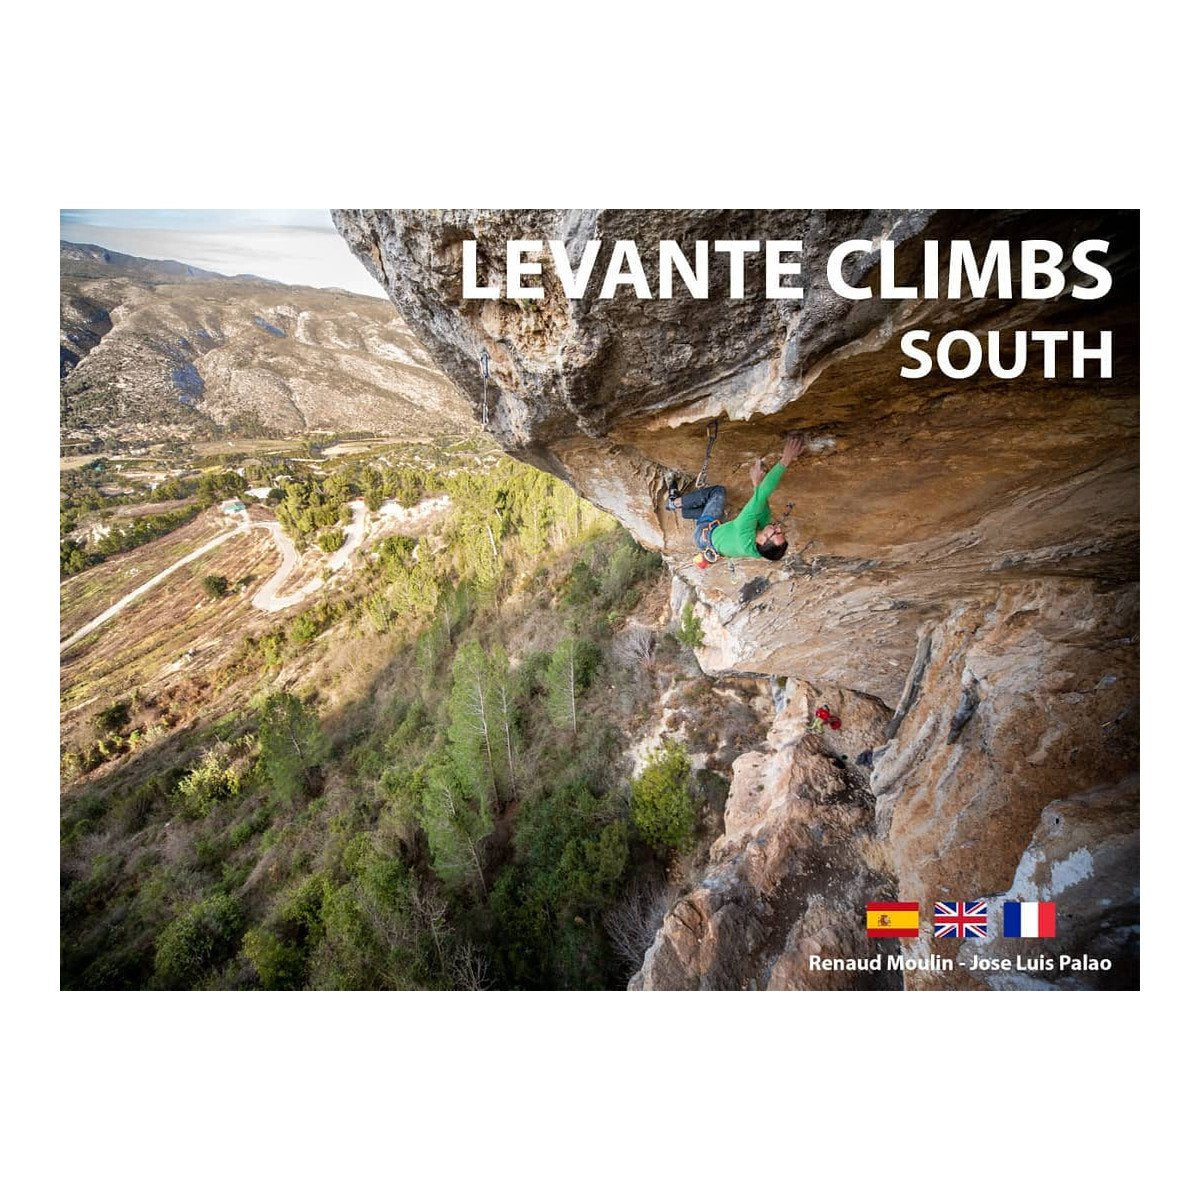 Levante Climbs South